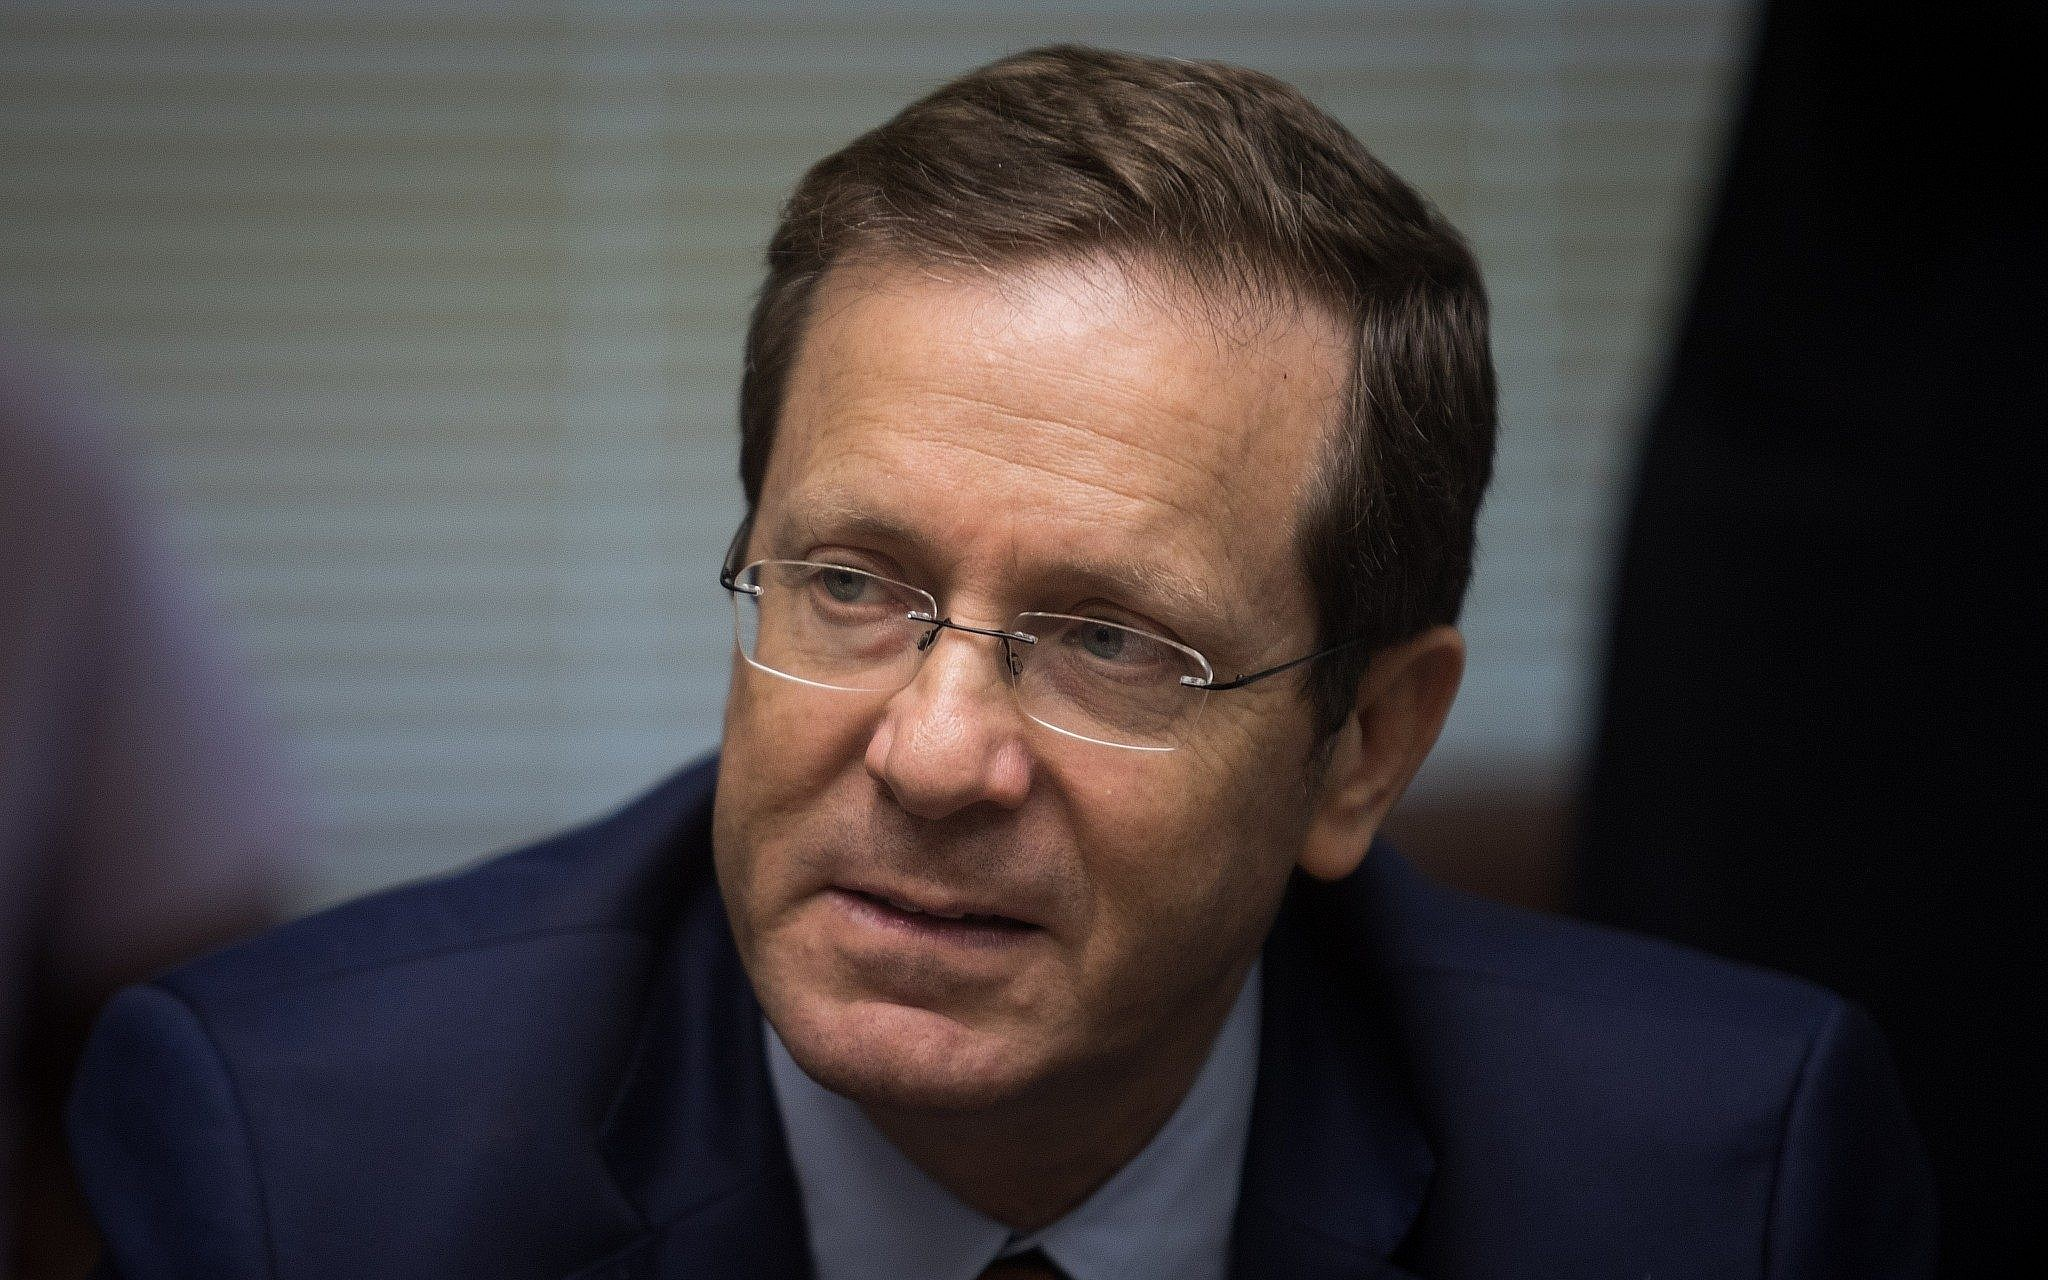 Israel MPs to debate divisive Jewish nation law next week